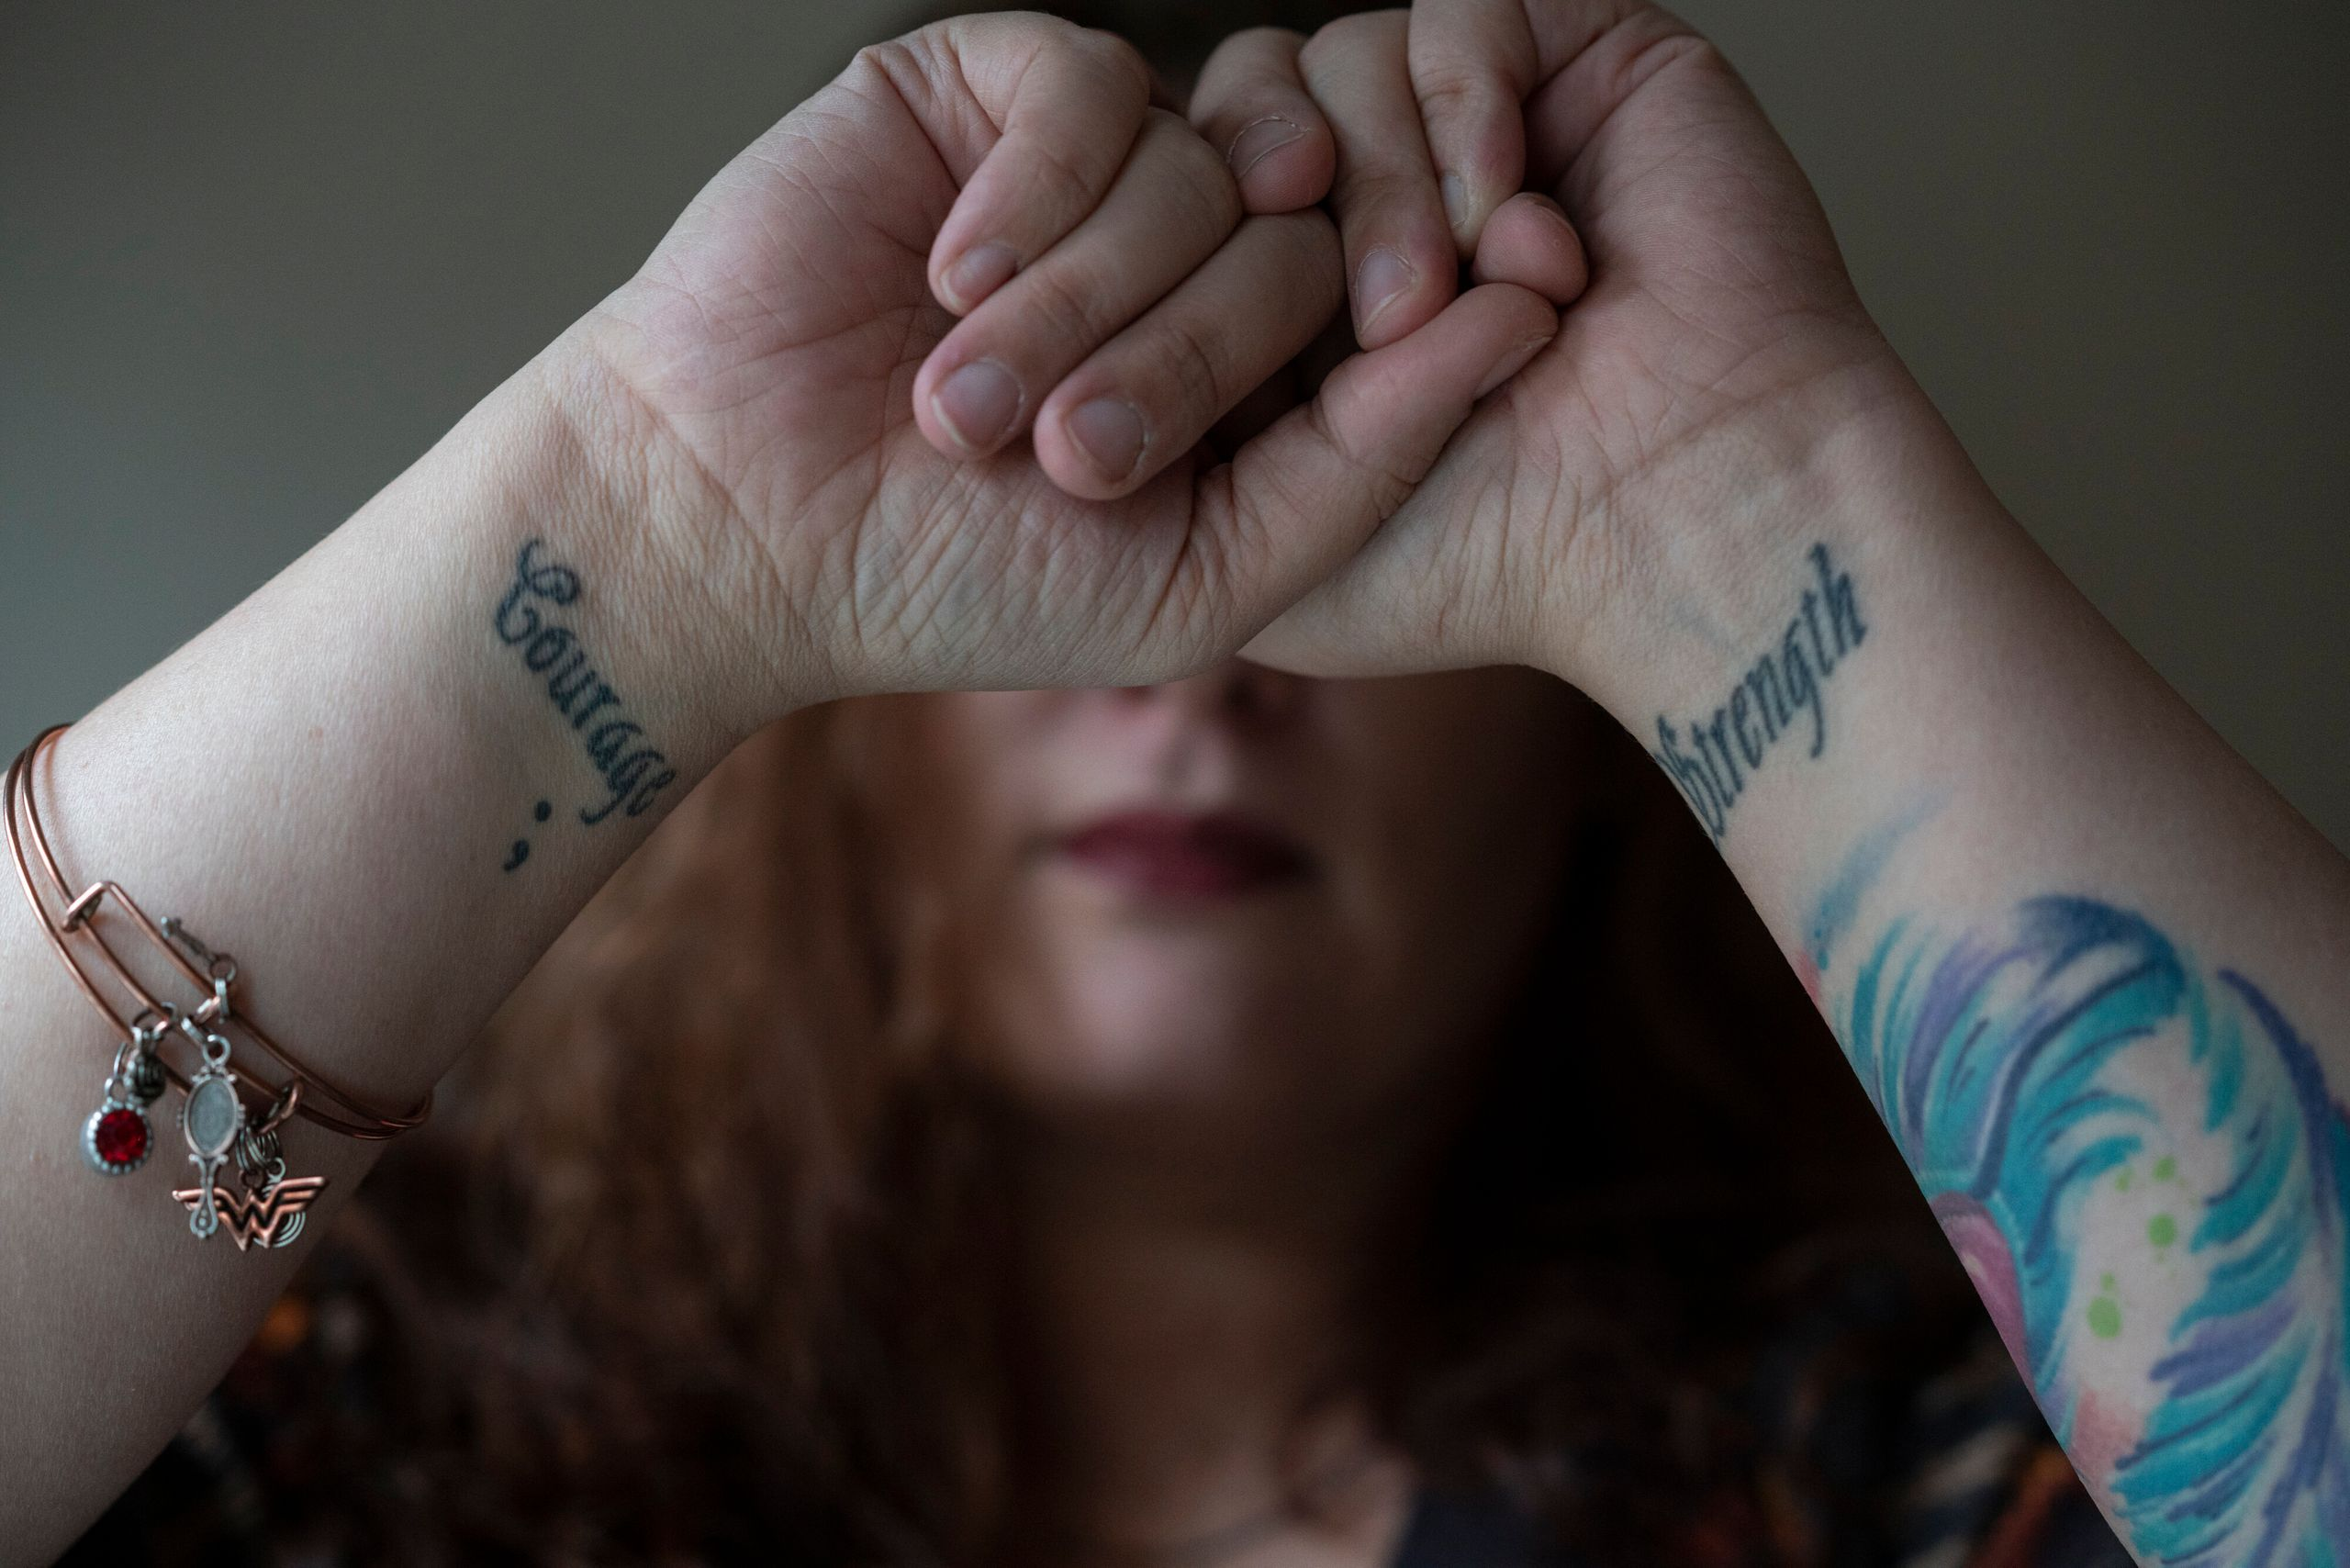 """Before leaving her ex-husband she got tattoos on her wrists with the words """"Strength"""" and """"Courage"""" to remind herself,"""